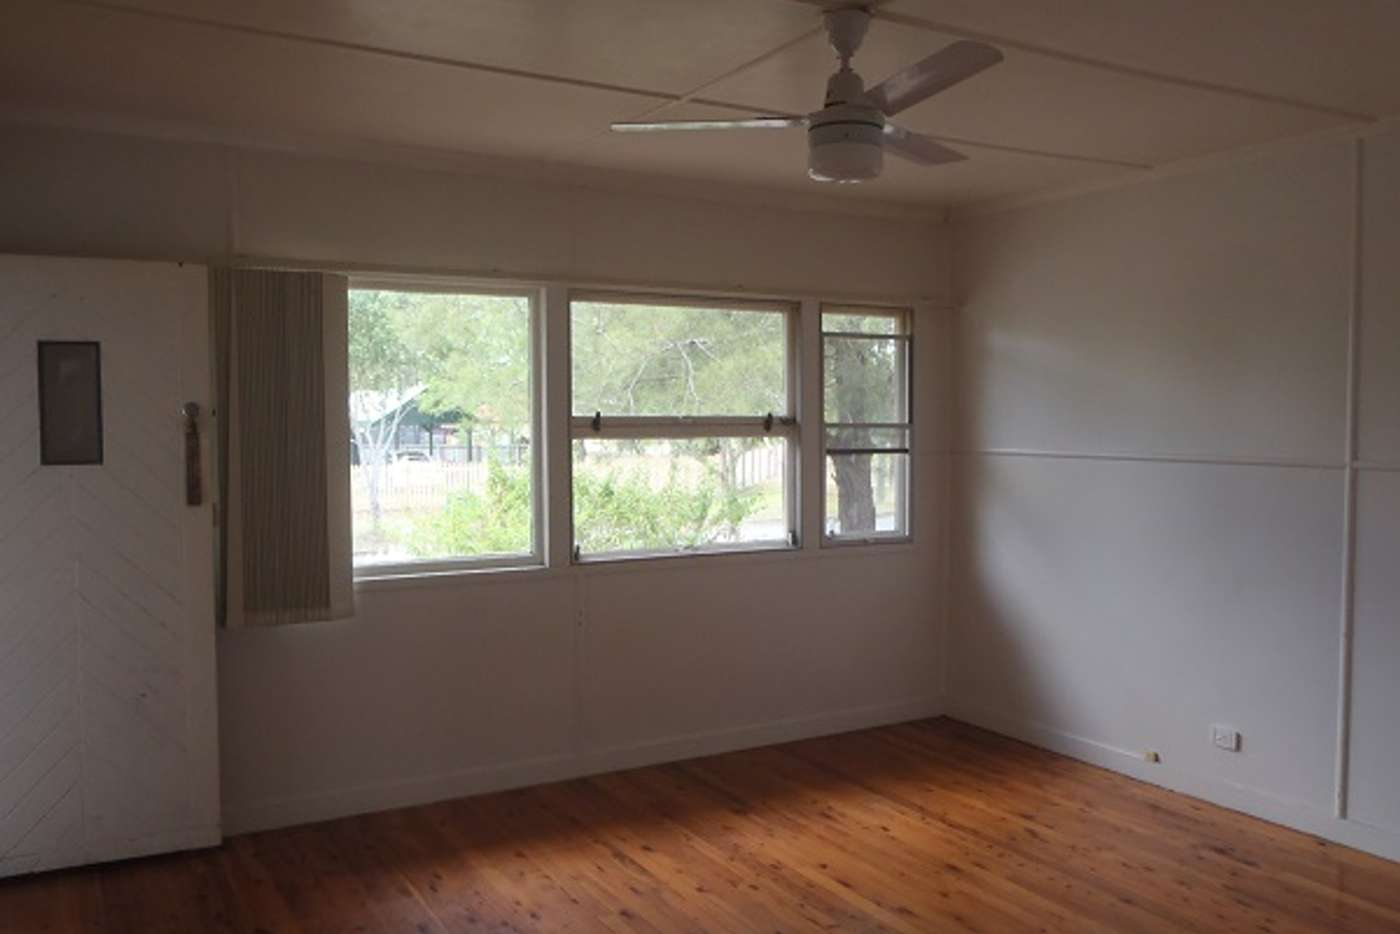 Sixth view of Homely house listing, 11 Avon Street, Leichhardt QLD 4305